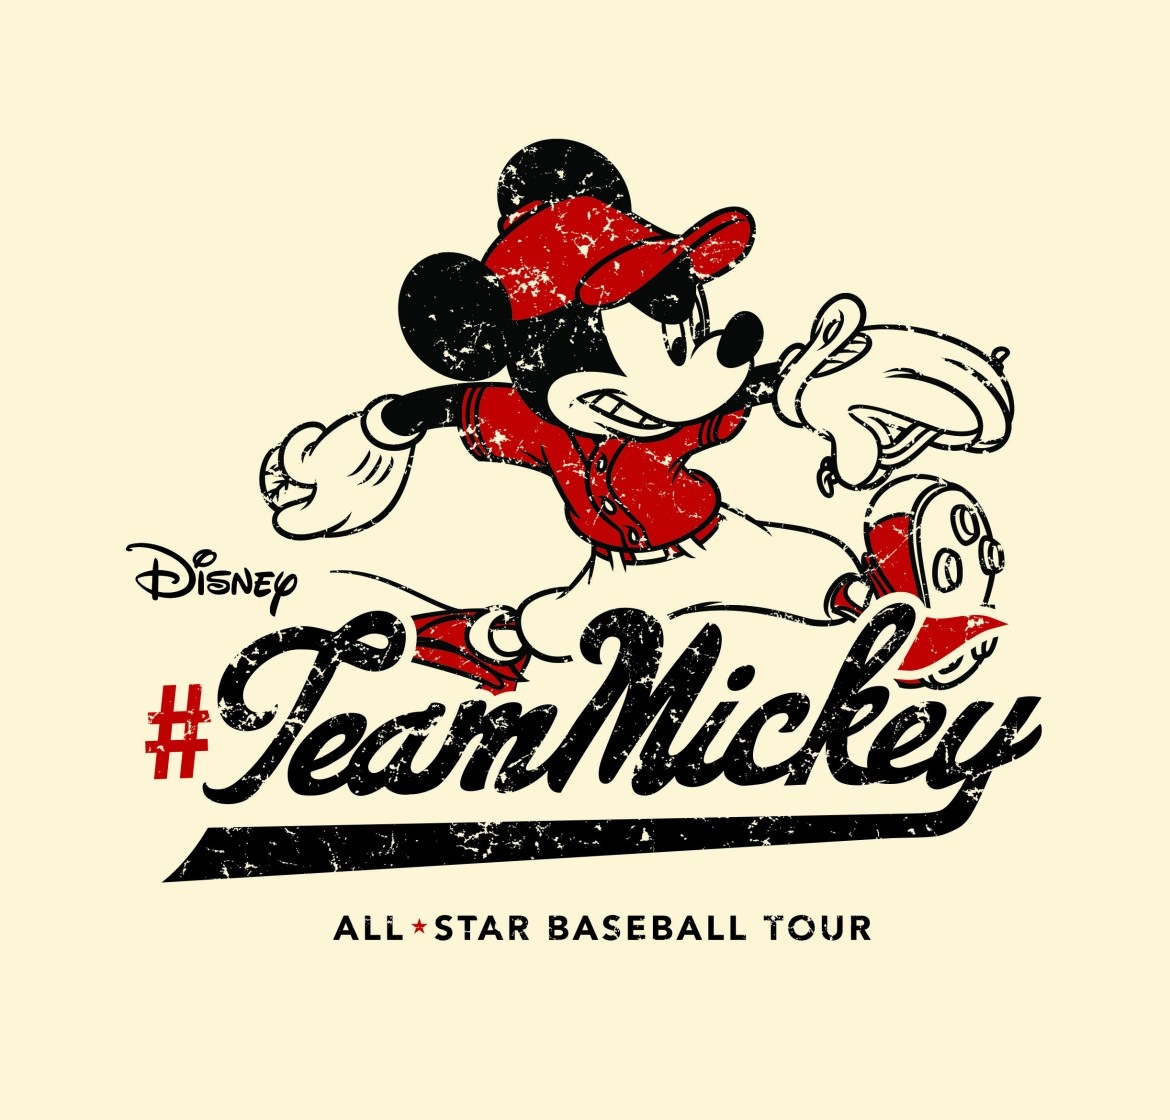 Announcing the TeamMickey All Star Baseball Tour